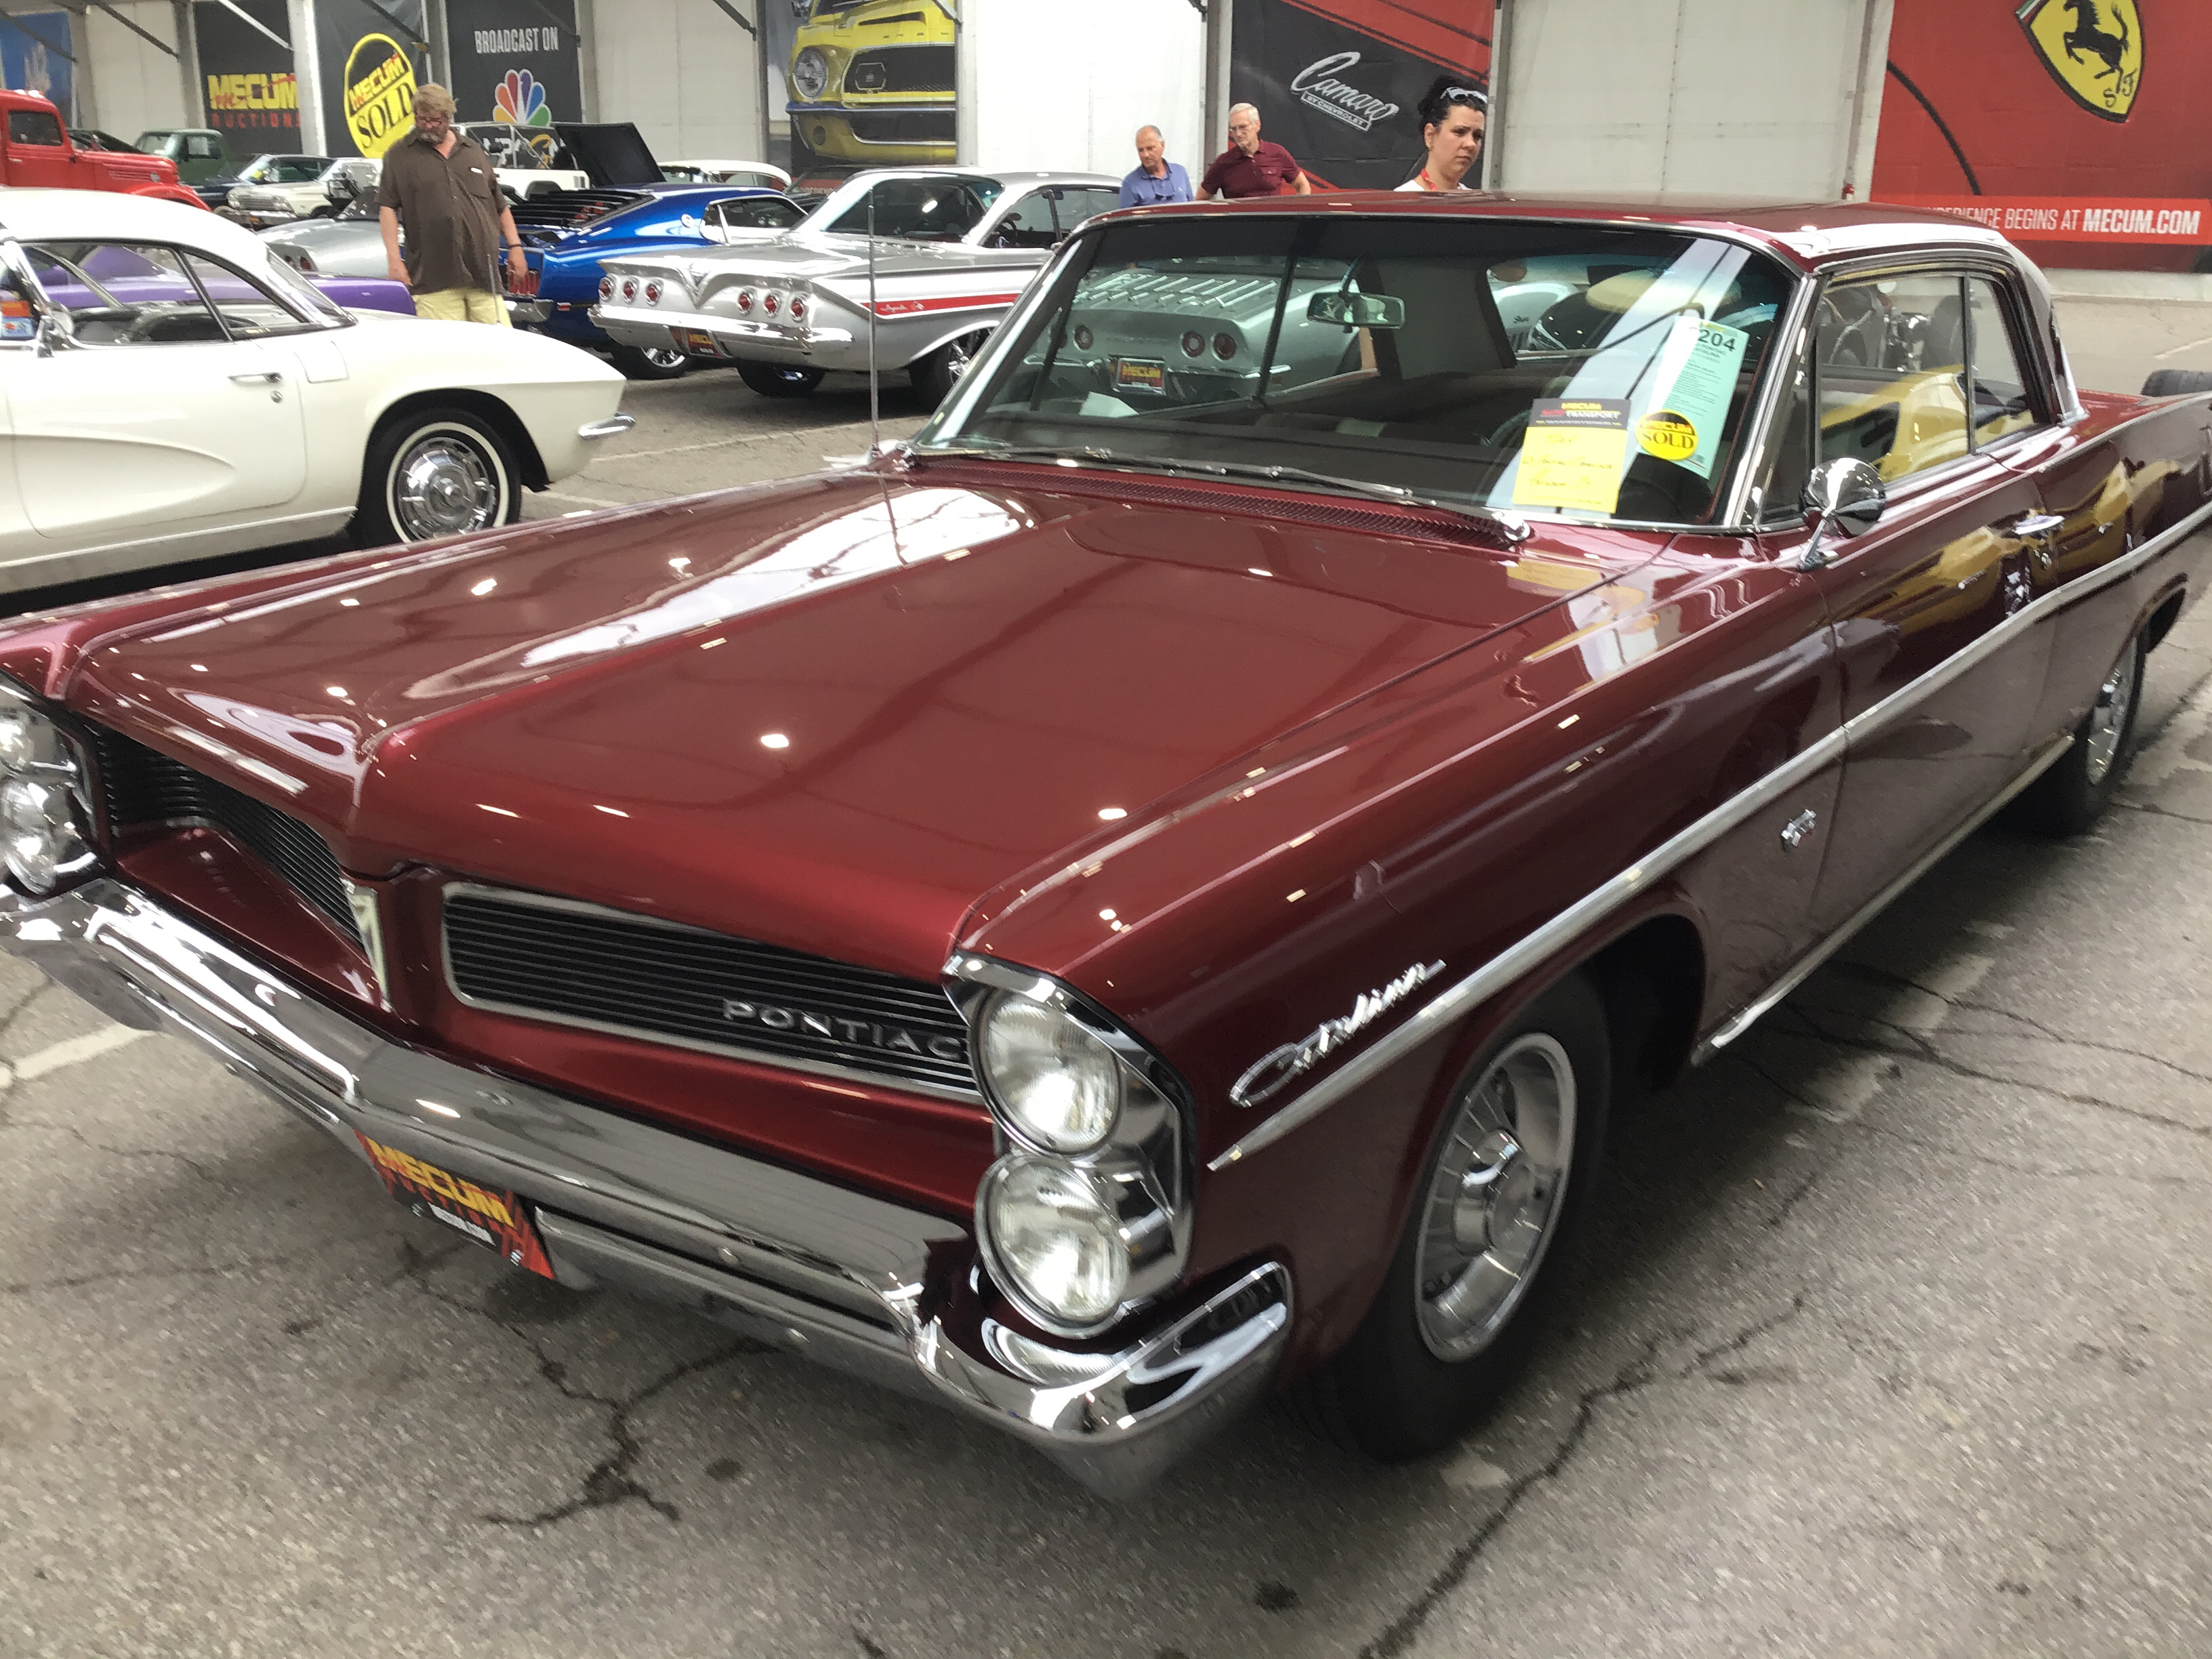 1962 Pontiac Catalina Values | Hagerty Valuation Tool®